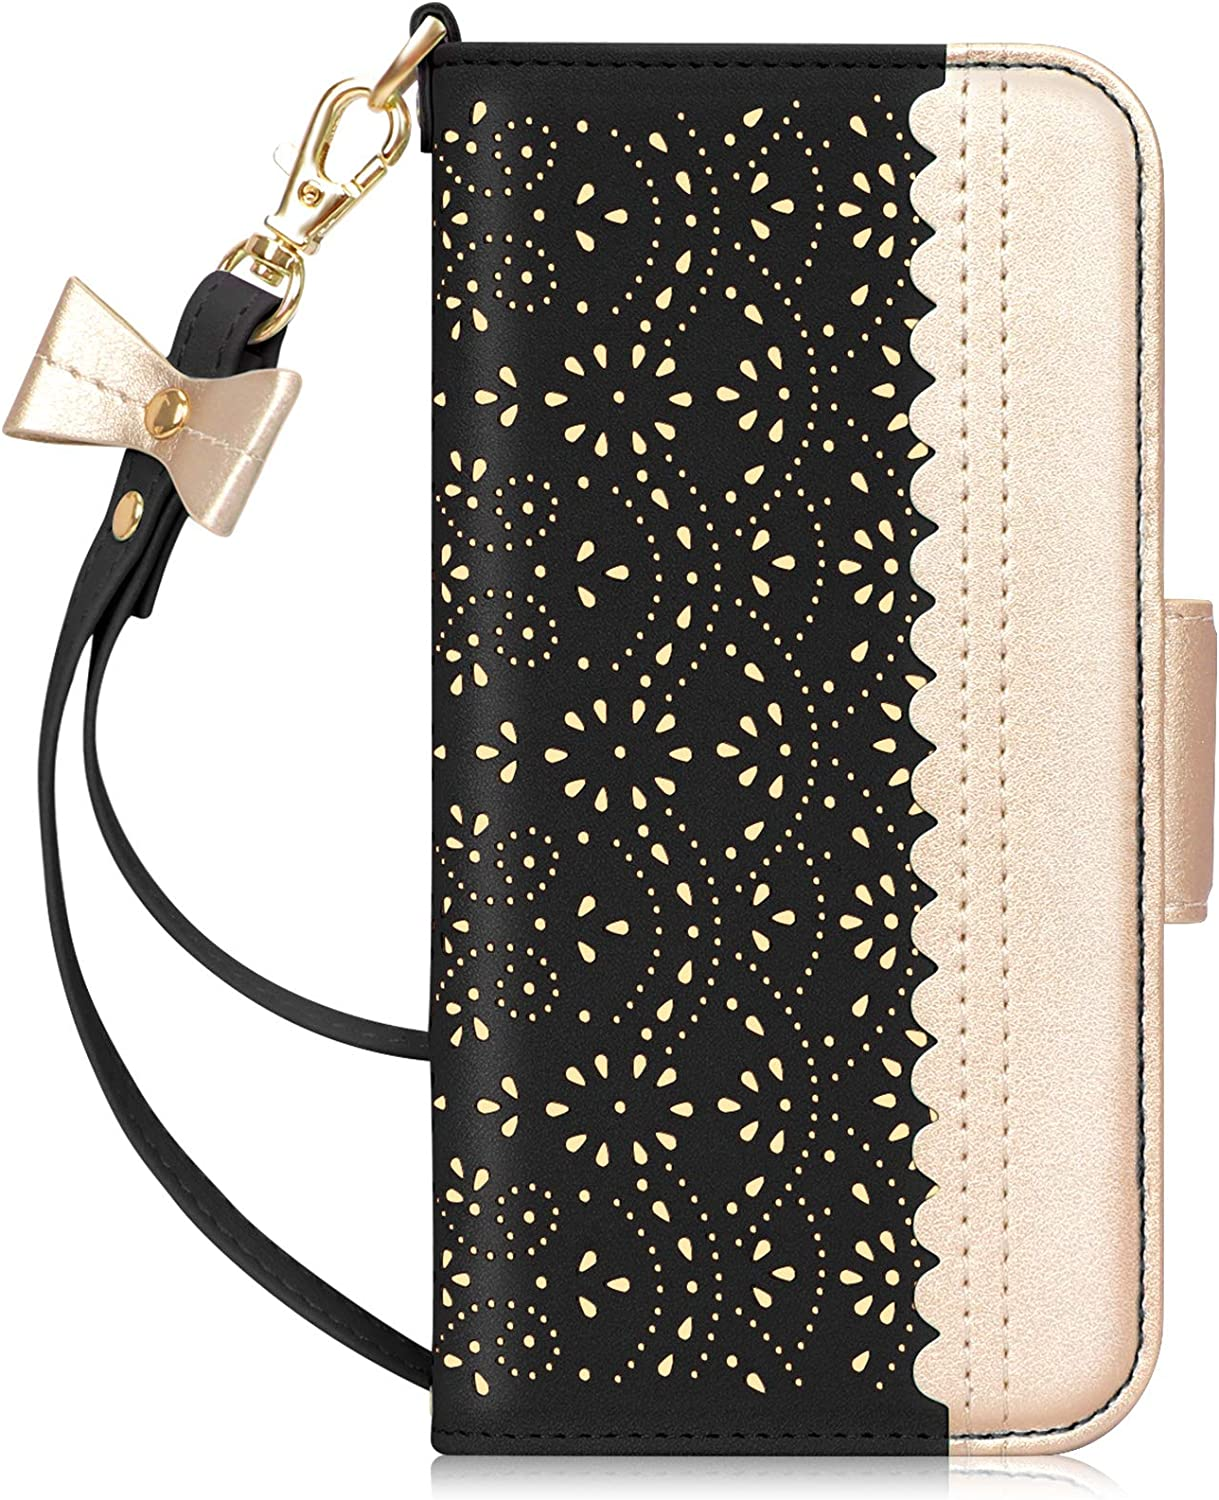 Makeup Mirror Leather Wallet Case with for iPhone 12//iPhone 12 Pro 6.1-Inch Black WWW Wallet Case Compatible with iPhone 12//iPhone 12 Pro 2020, Kickstand Feature Romantic Carved Flower